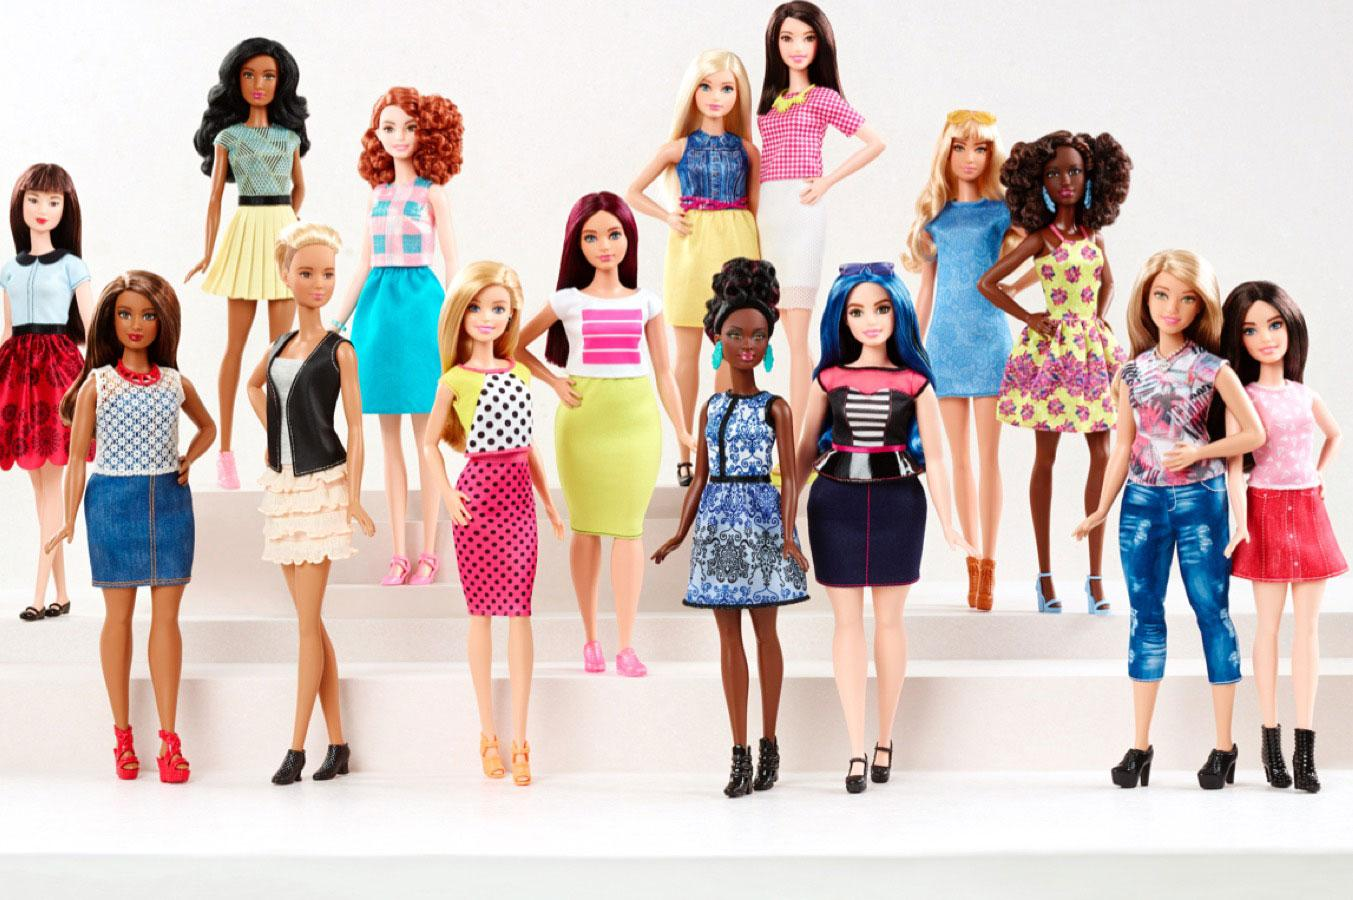 new shapes for the old barbie: will it make a difference? | uva today